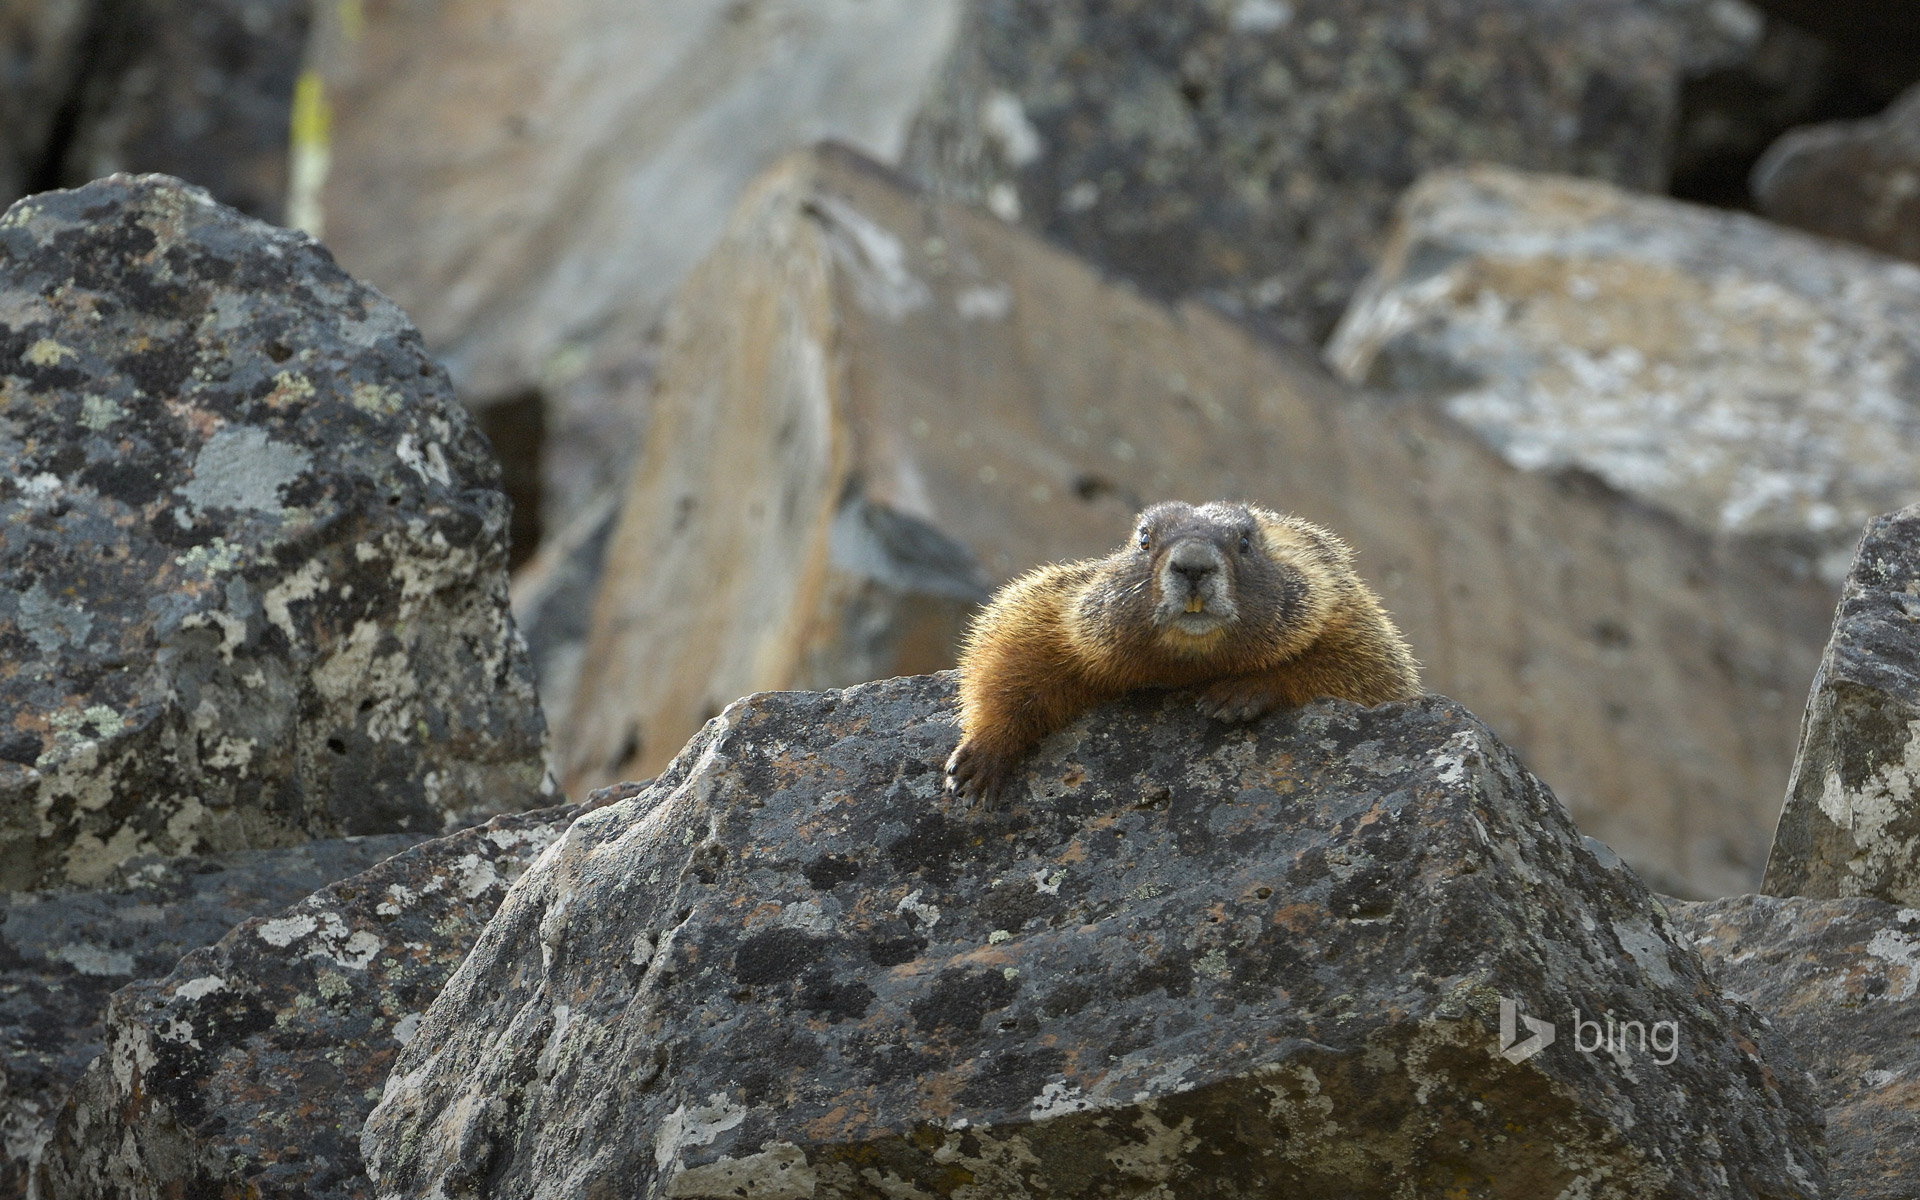 Yellow-bellied marmot in Yellowstone National Park, Wyoming